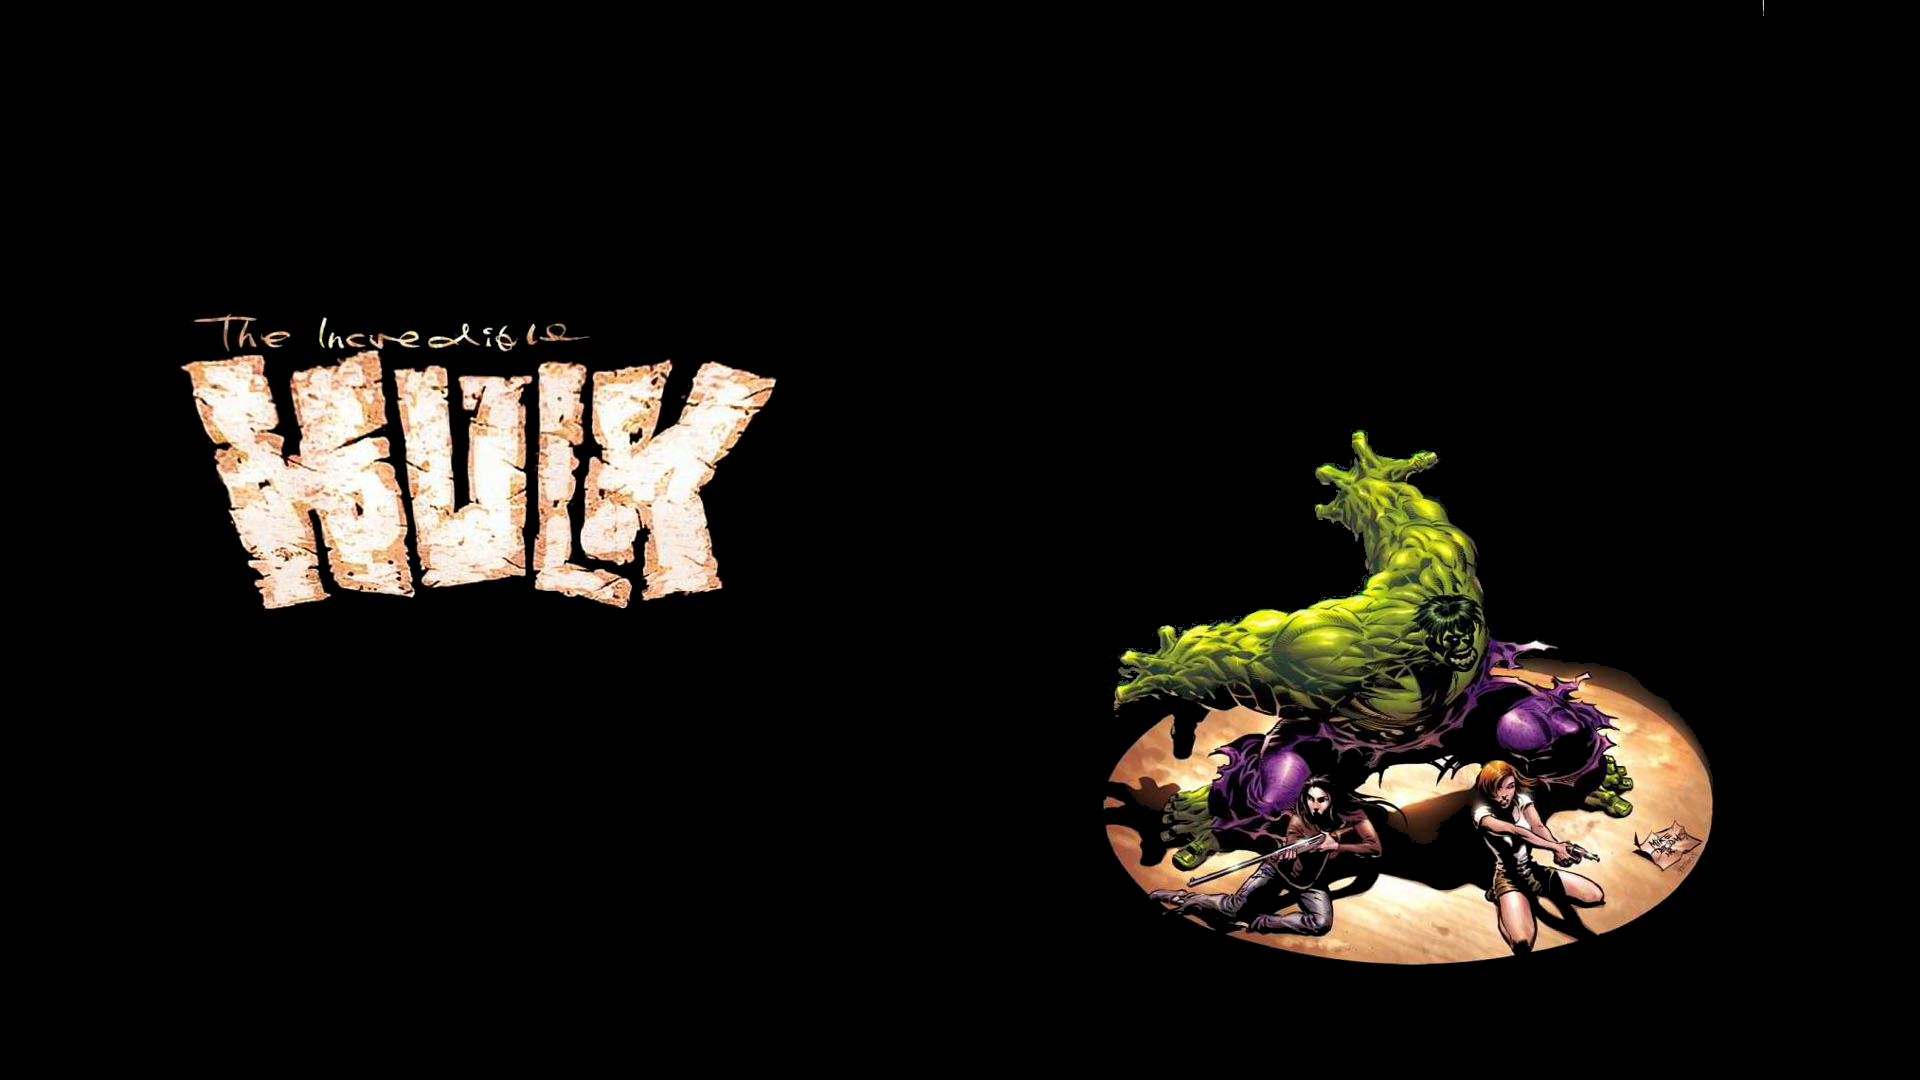 incredible hulk wallpaper for desktop (9)